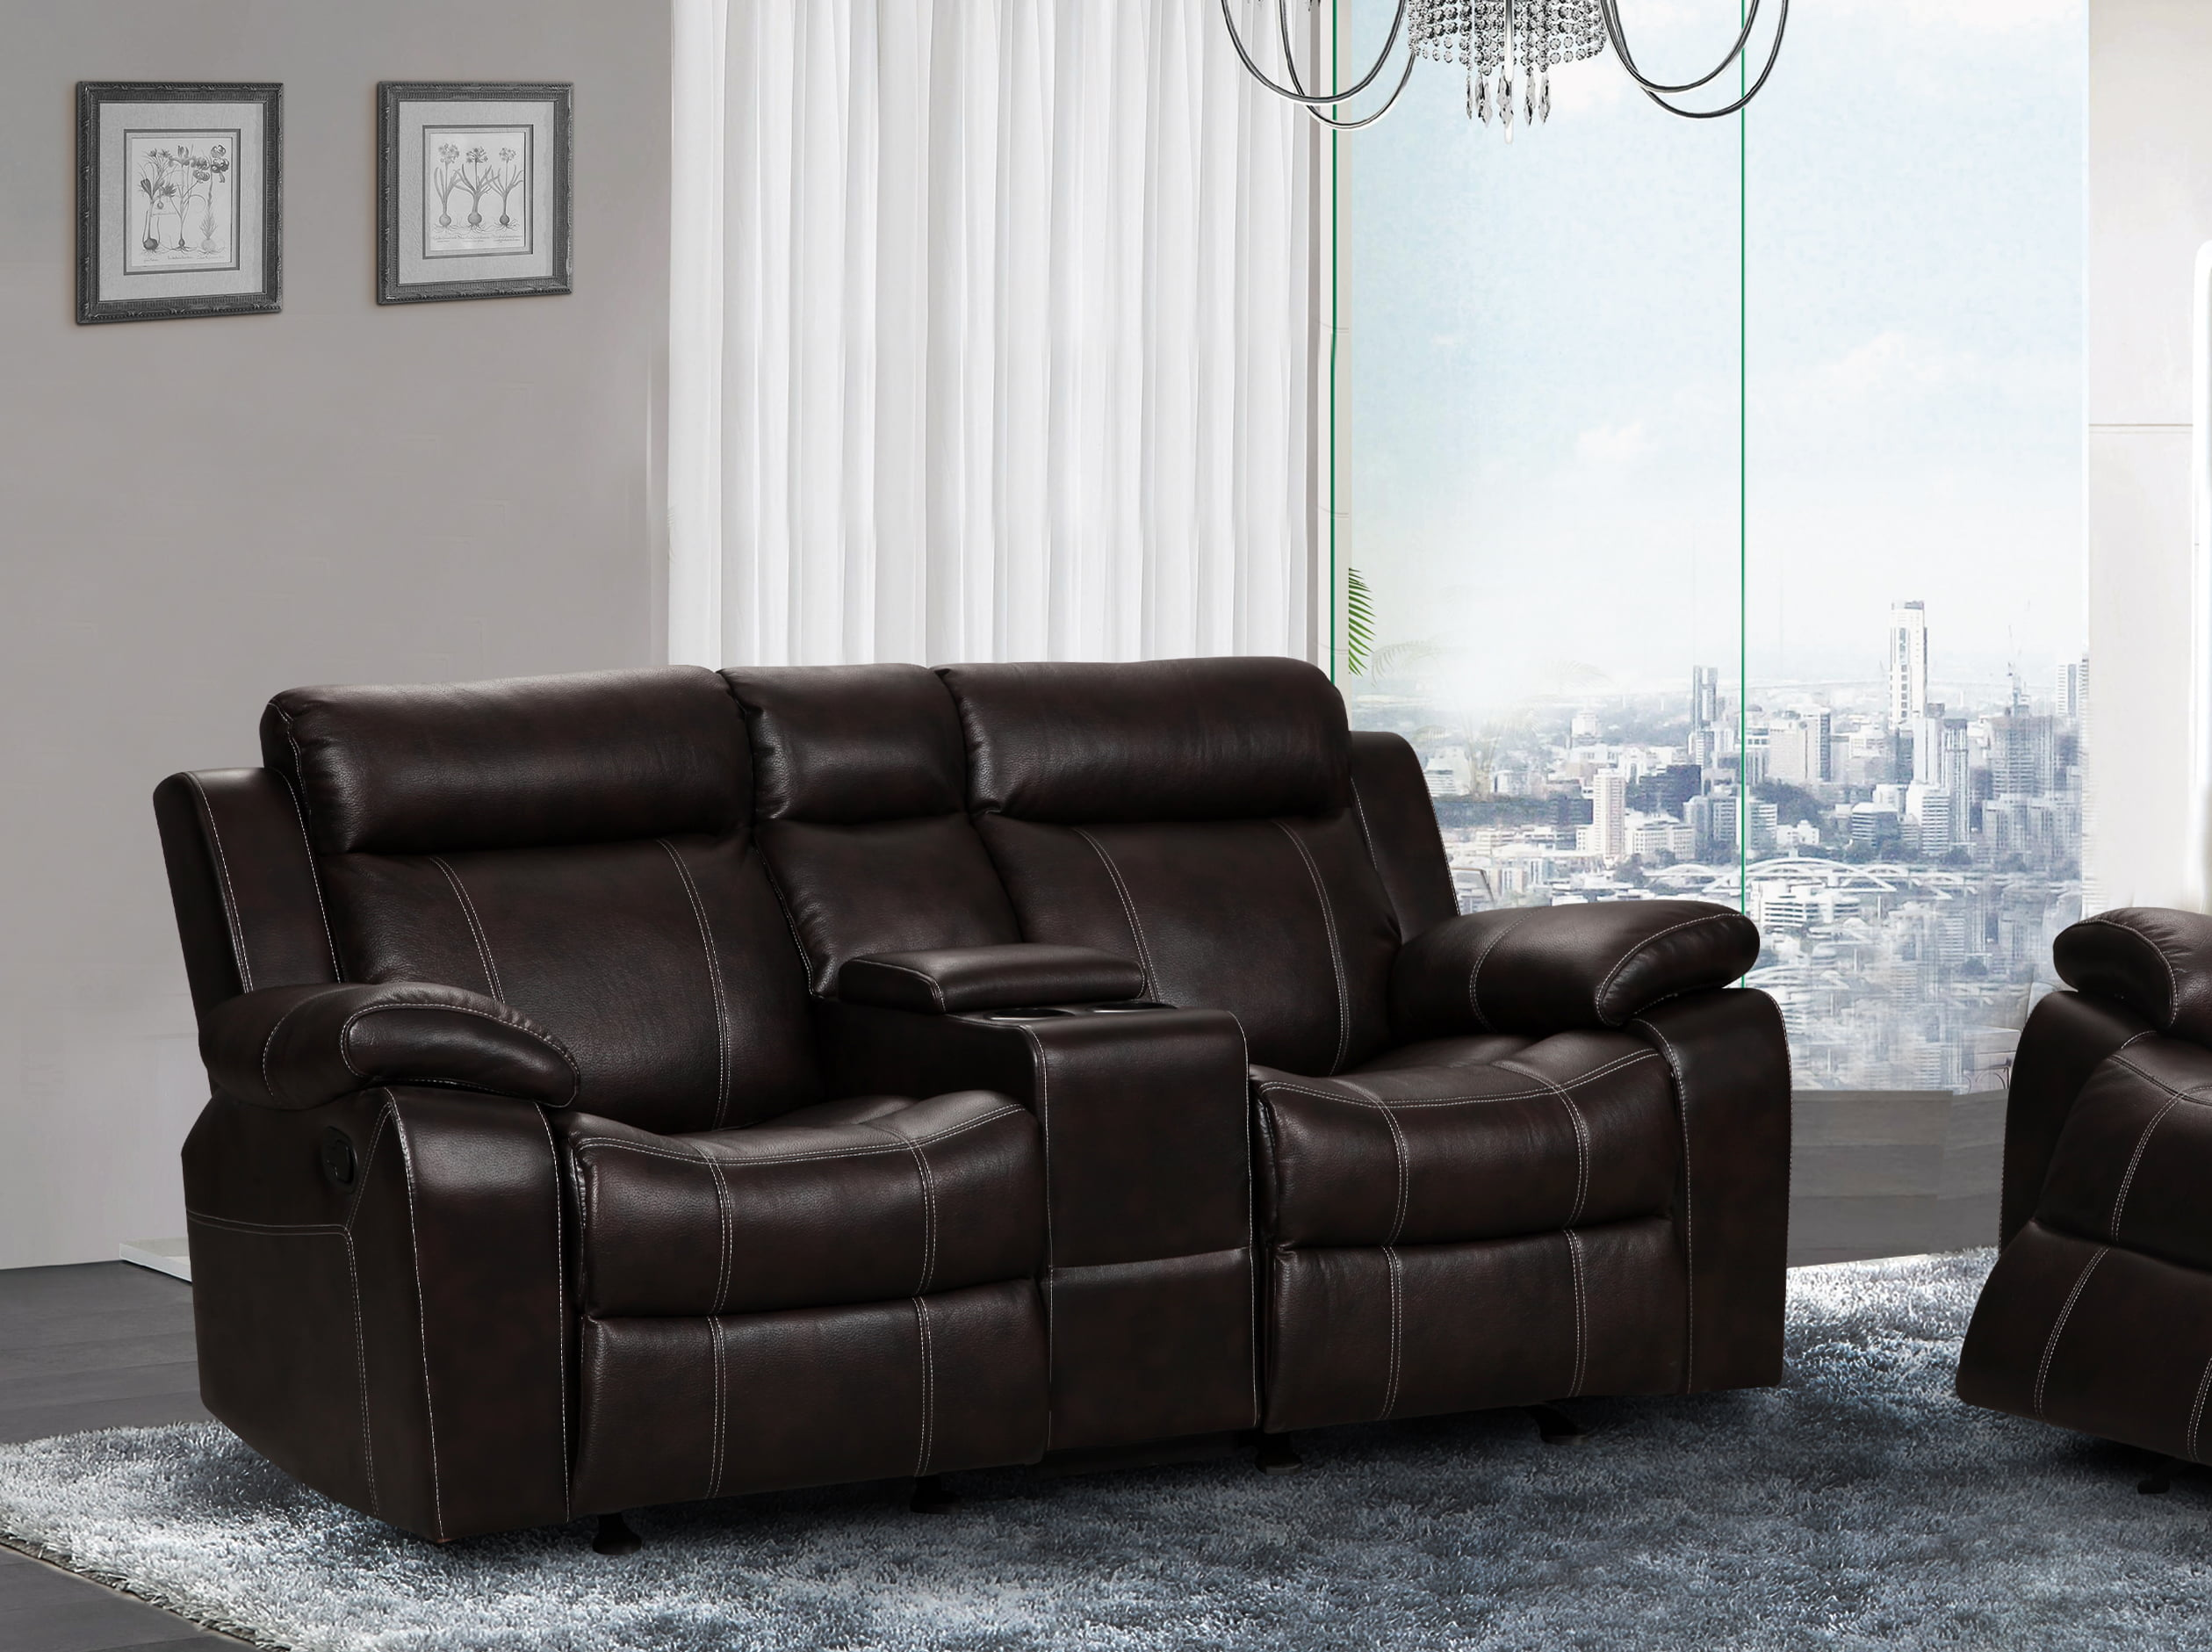 UFE Vivienne Leather Air Rocking Reclining Loveseat with Console Brown : leather recliner loveseats - islam-shia.org